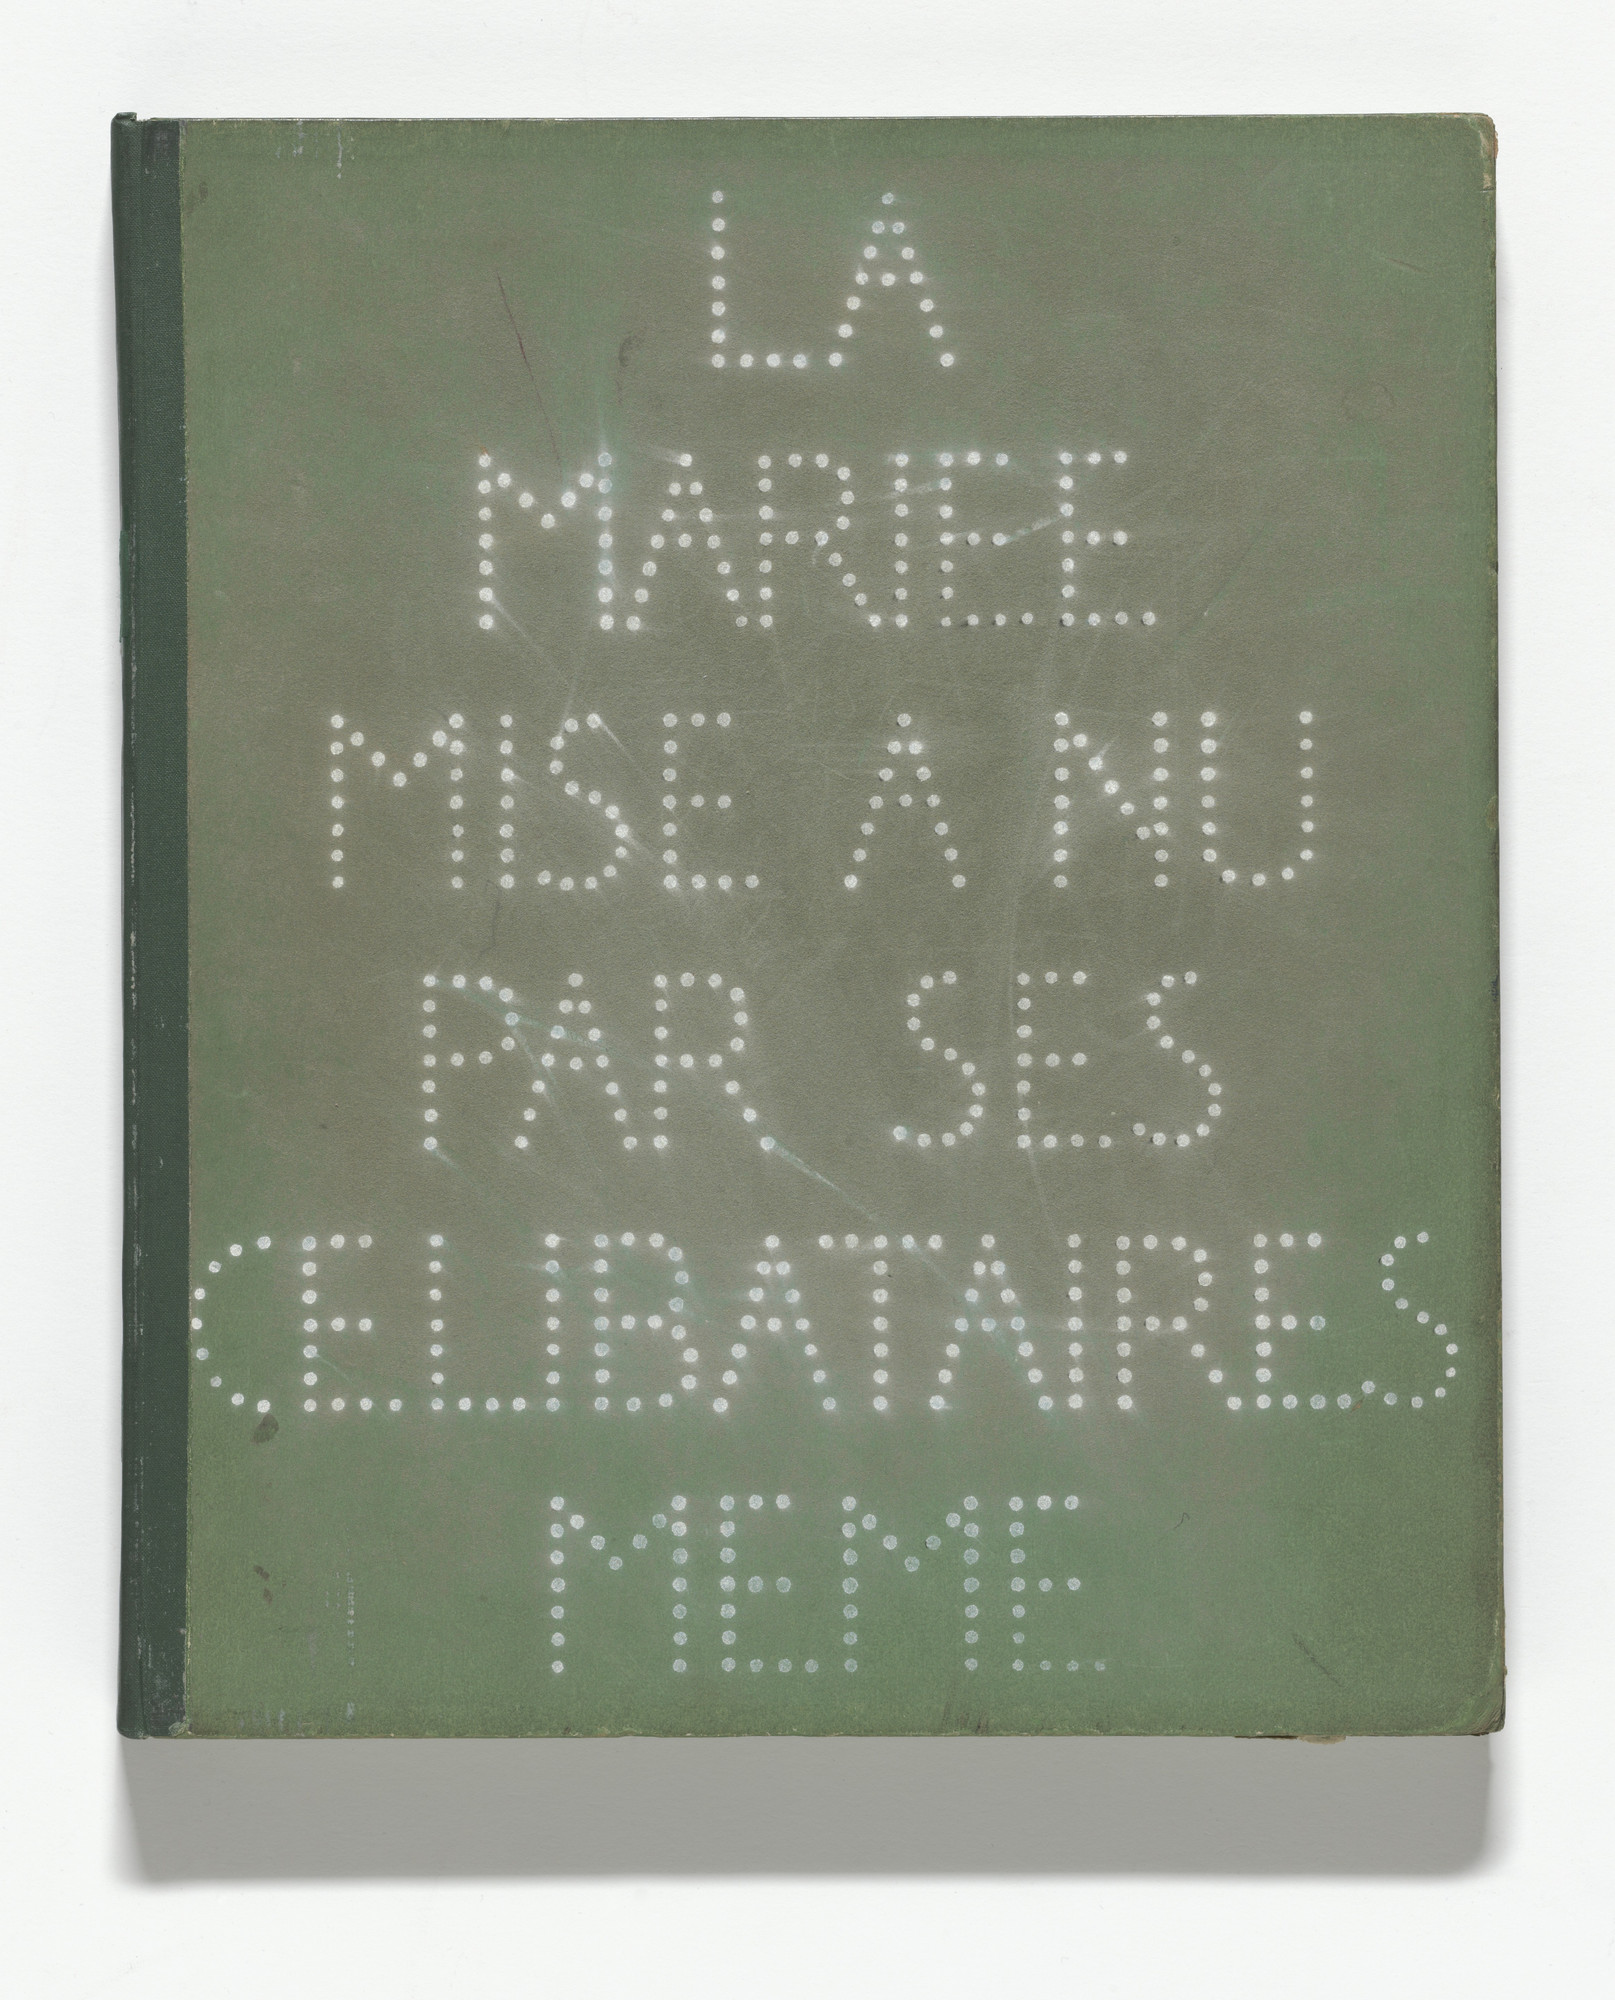 Marcel Duchamp. The Bride Stripped Bare by Her Bachelors, Even (The Green Box) (La Mariée mise à nu par ses célibataires, même [Boîte verte]). 1934